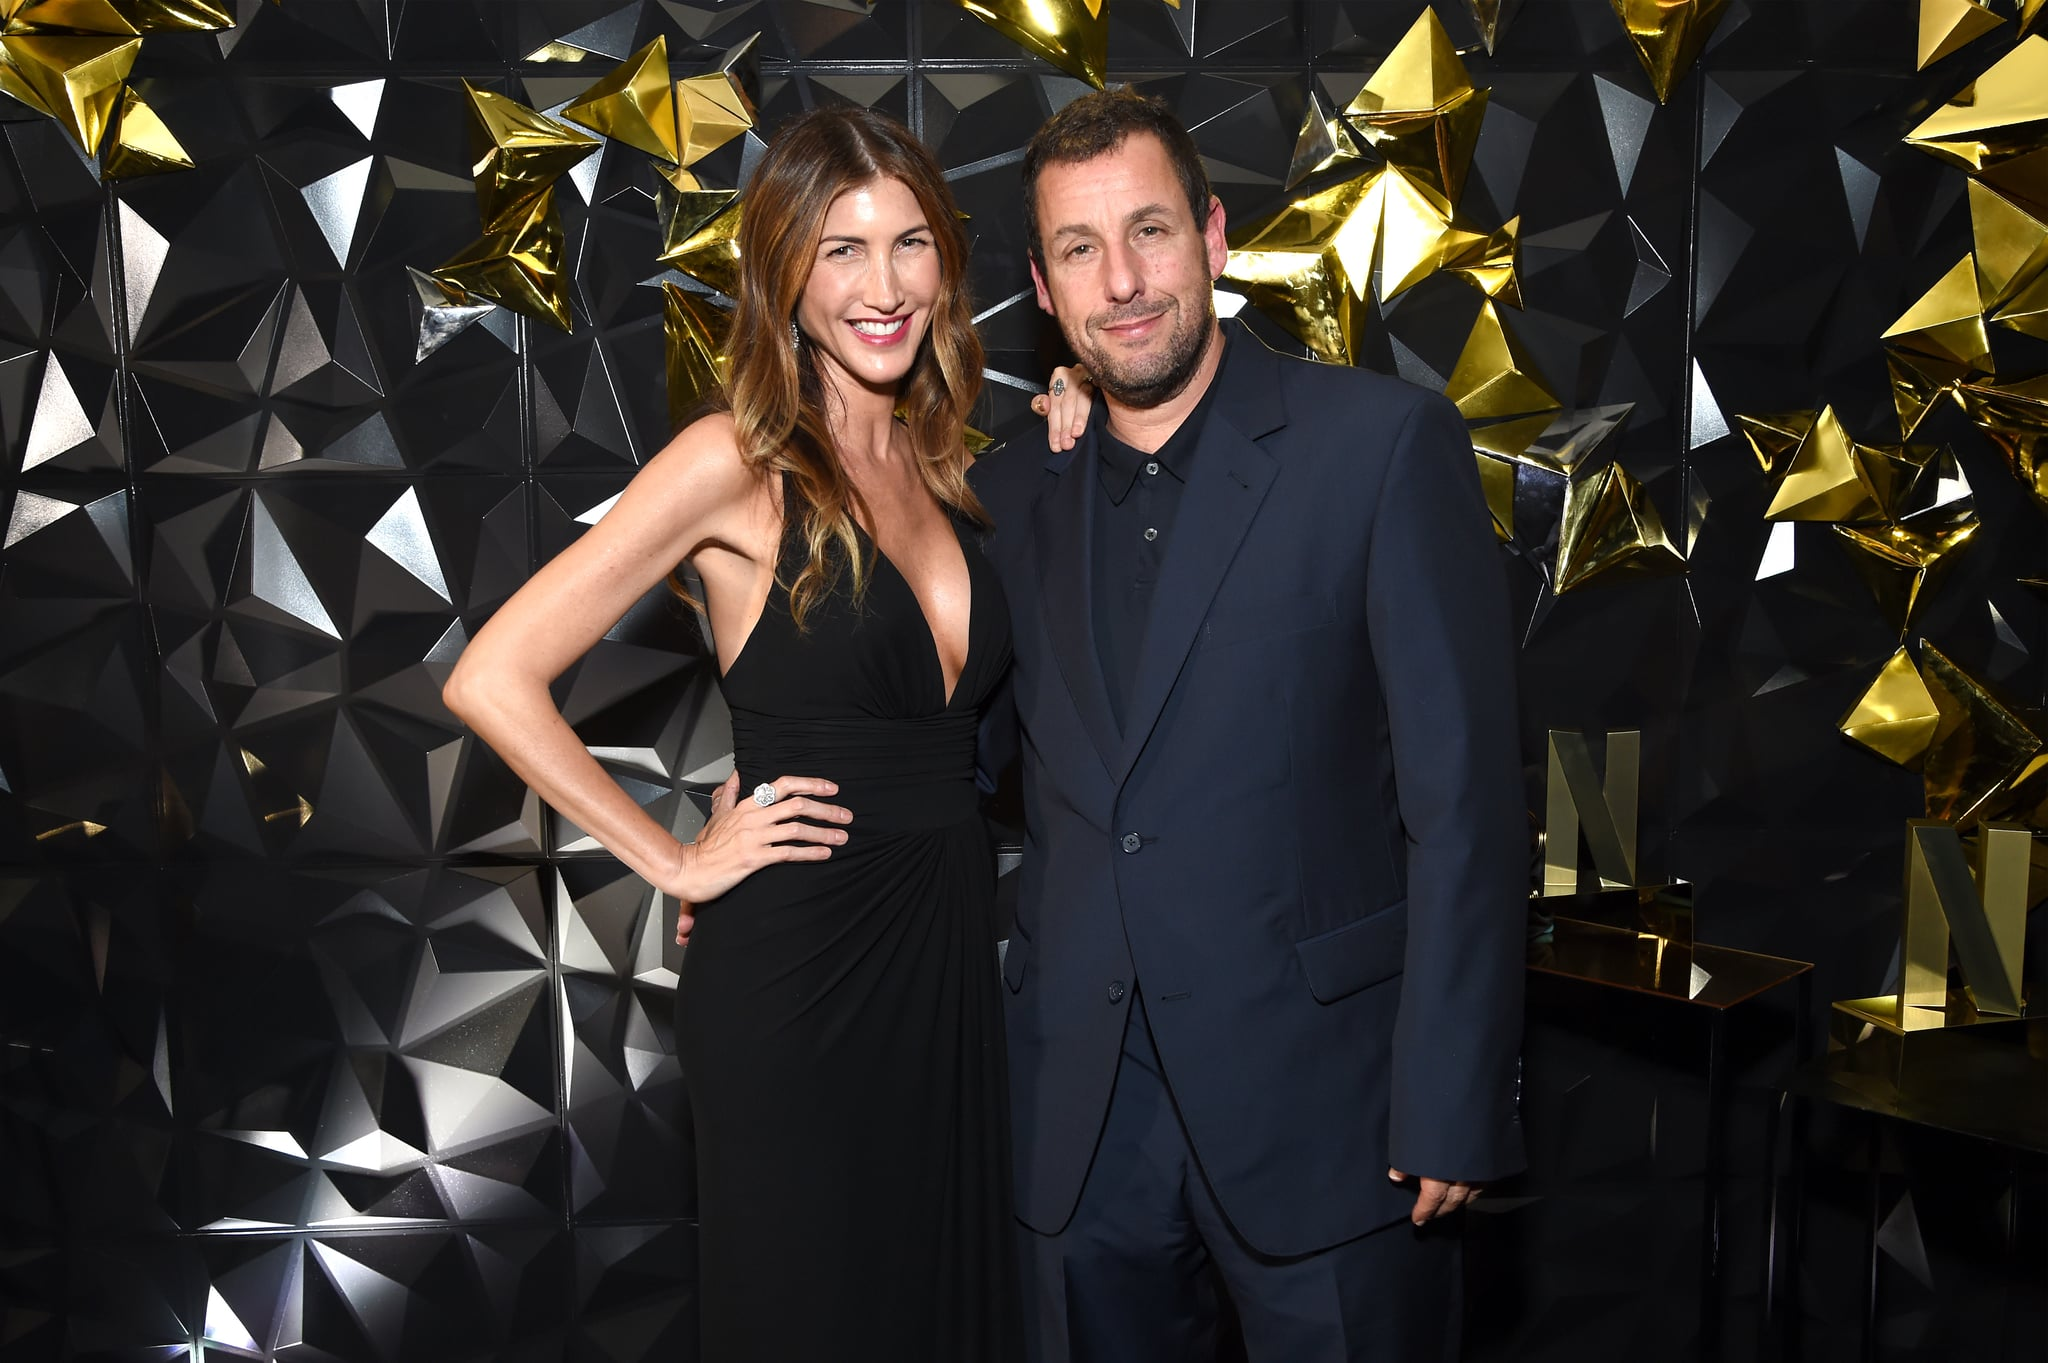 LOS ANGELES, CALIFORNIA - SEPTEMBER 22: Jackie Sandler and Adam Sandler attend the 2019 Netflix Primetime Emmy Awards After Party at Milk Studios on September 22, 2019 in Los Angeles, California. (Photo by Michael Kovac/Getty Images for Netflix )